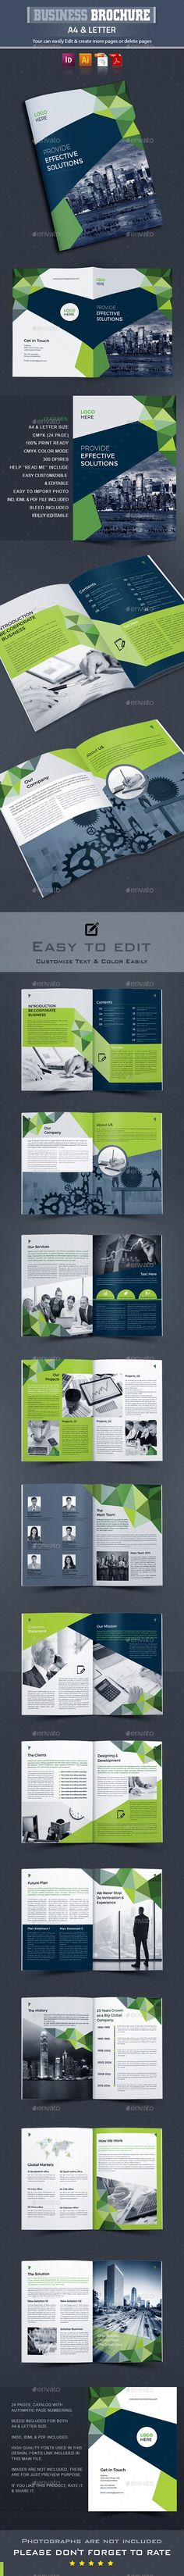 Corporate Brochure Template Vector EPS, InDesign INDD, AI Illustrator - 24 Pages, A4 & US Letter Size